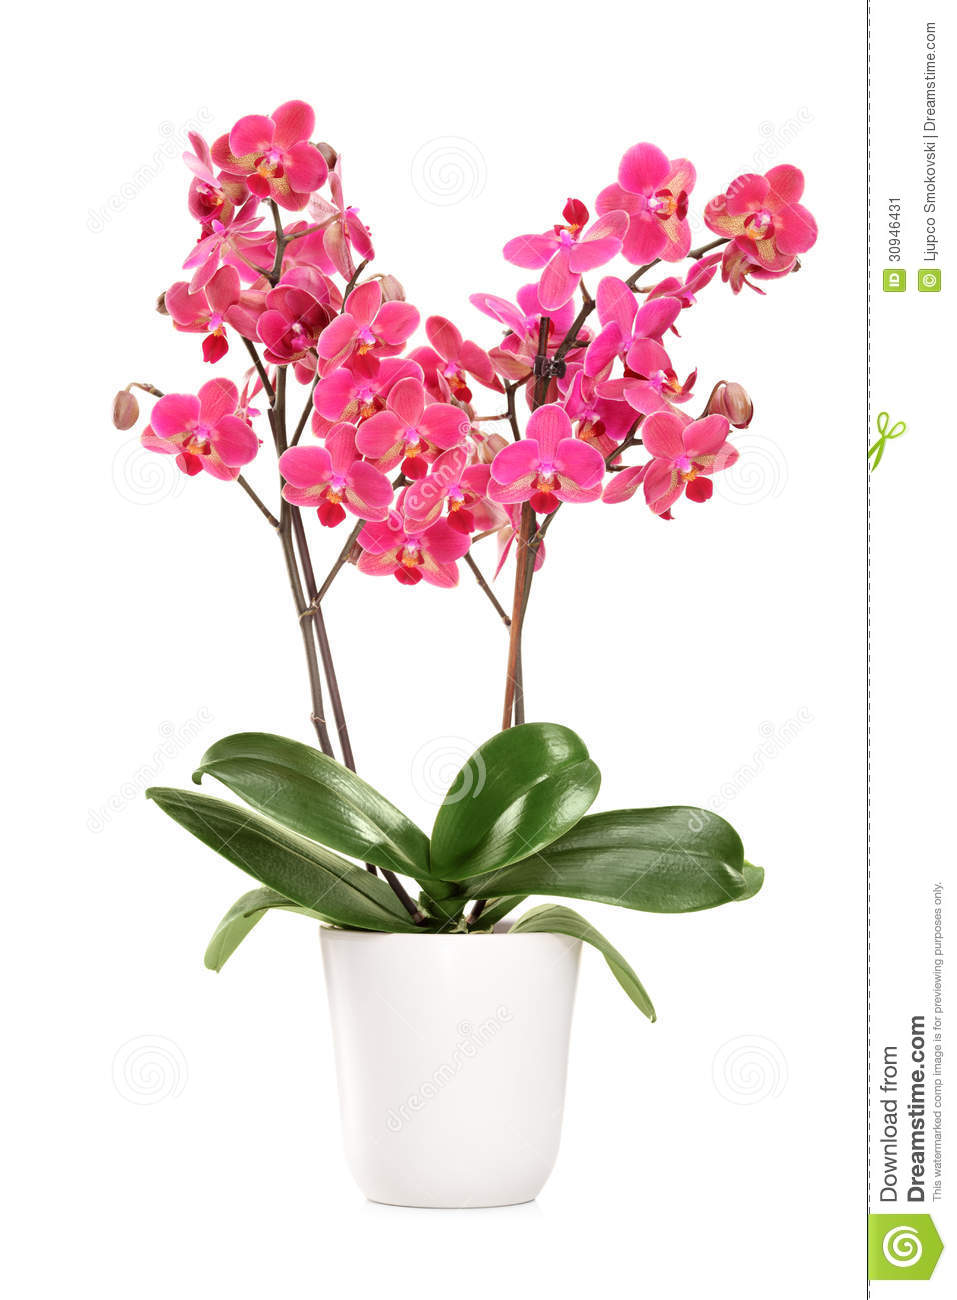 pink orchid in a white pot with many flowers stock image image of orchidaceous phalaenopsis. Black Bedroom Furniture Sets. Home Design Ideas